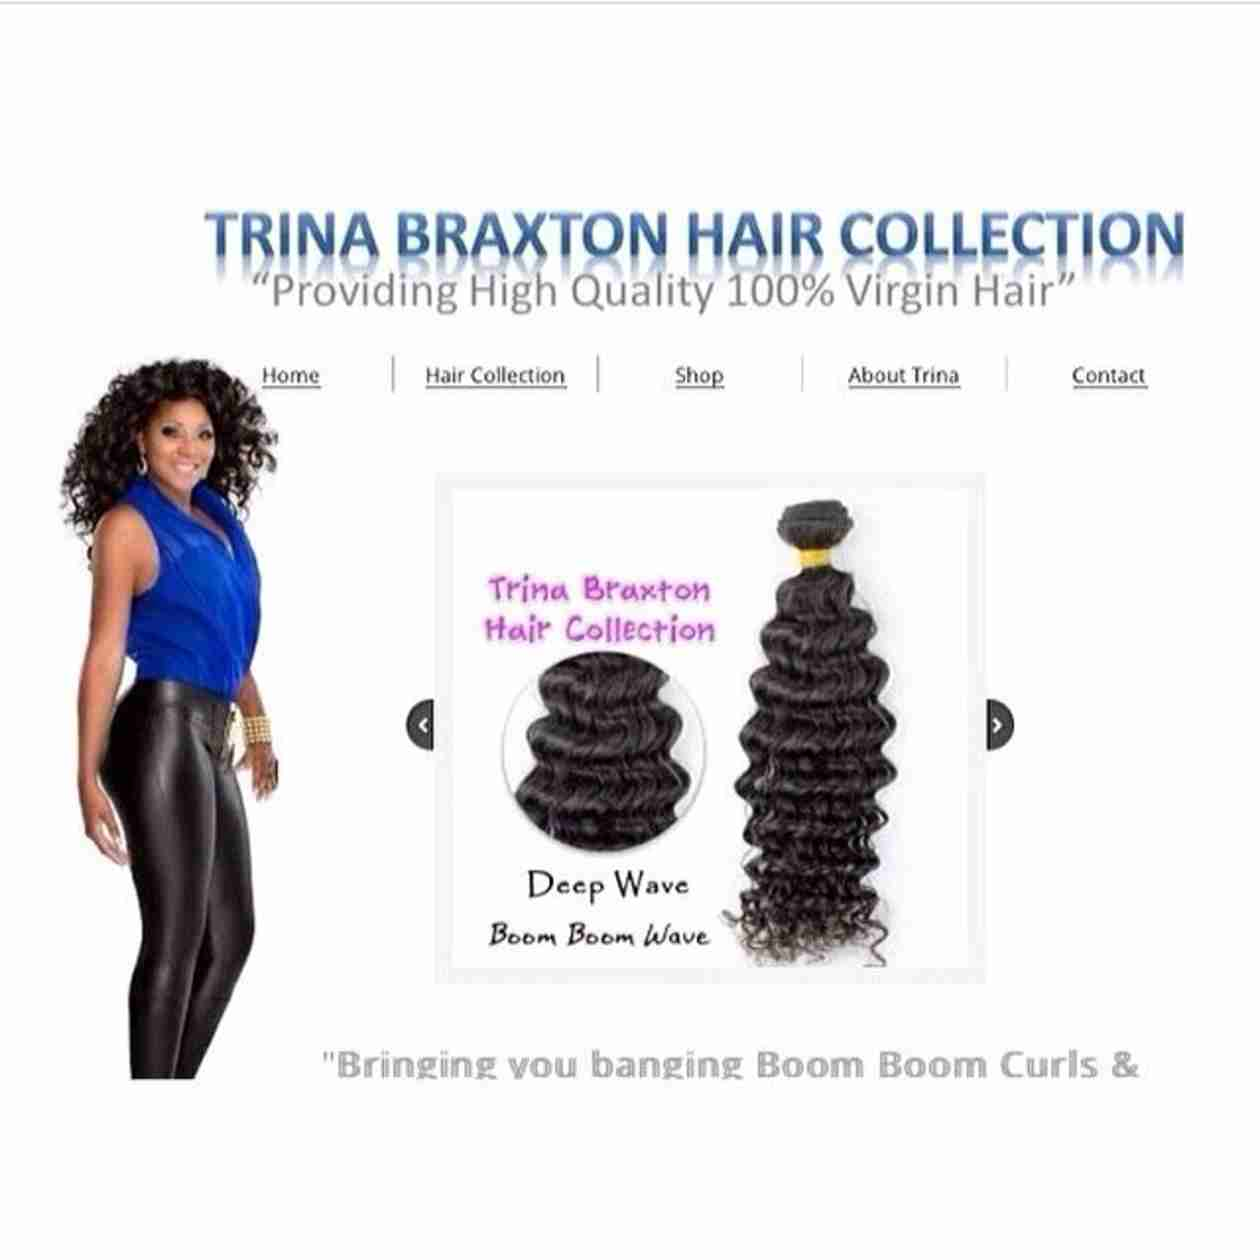 Trina Braxton Launching a Her Own Hair Collection (PHOTO)